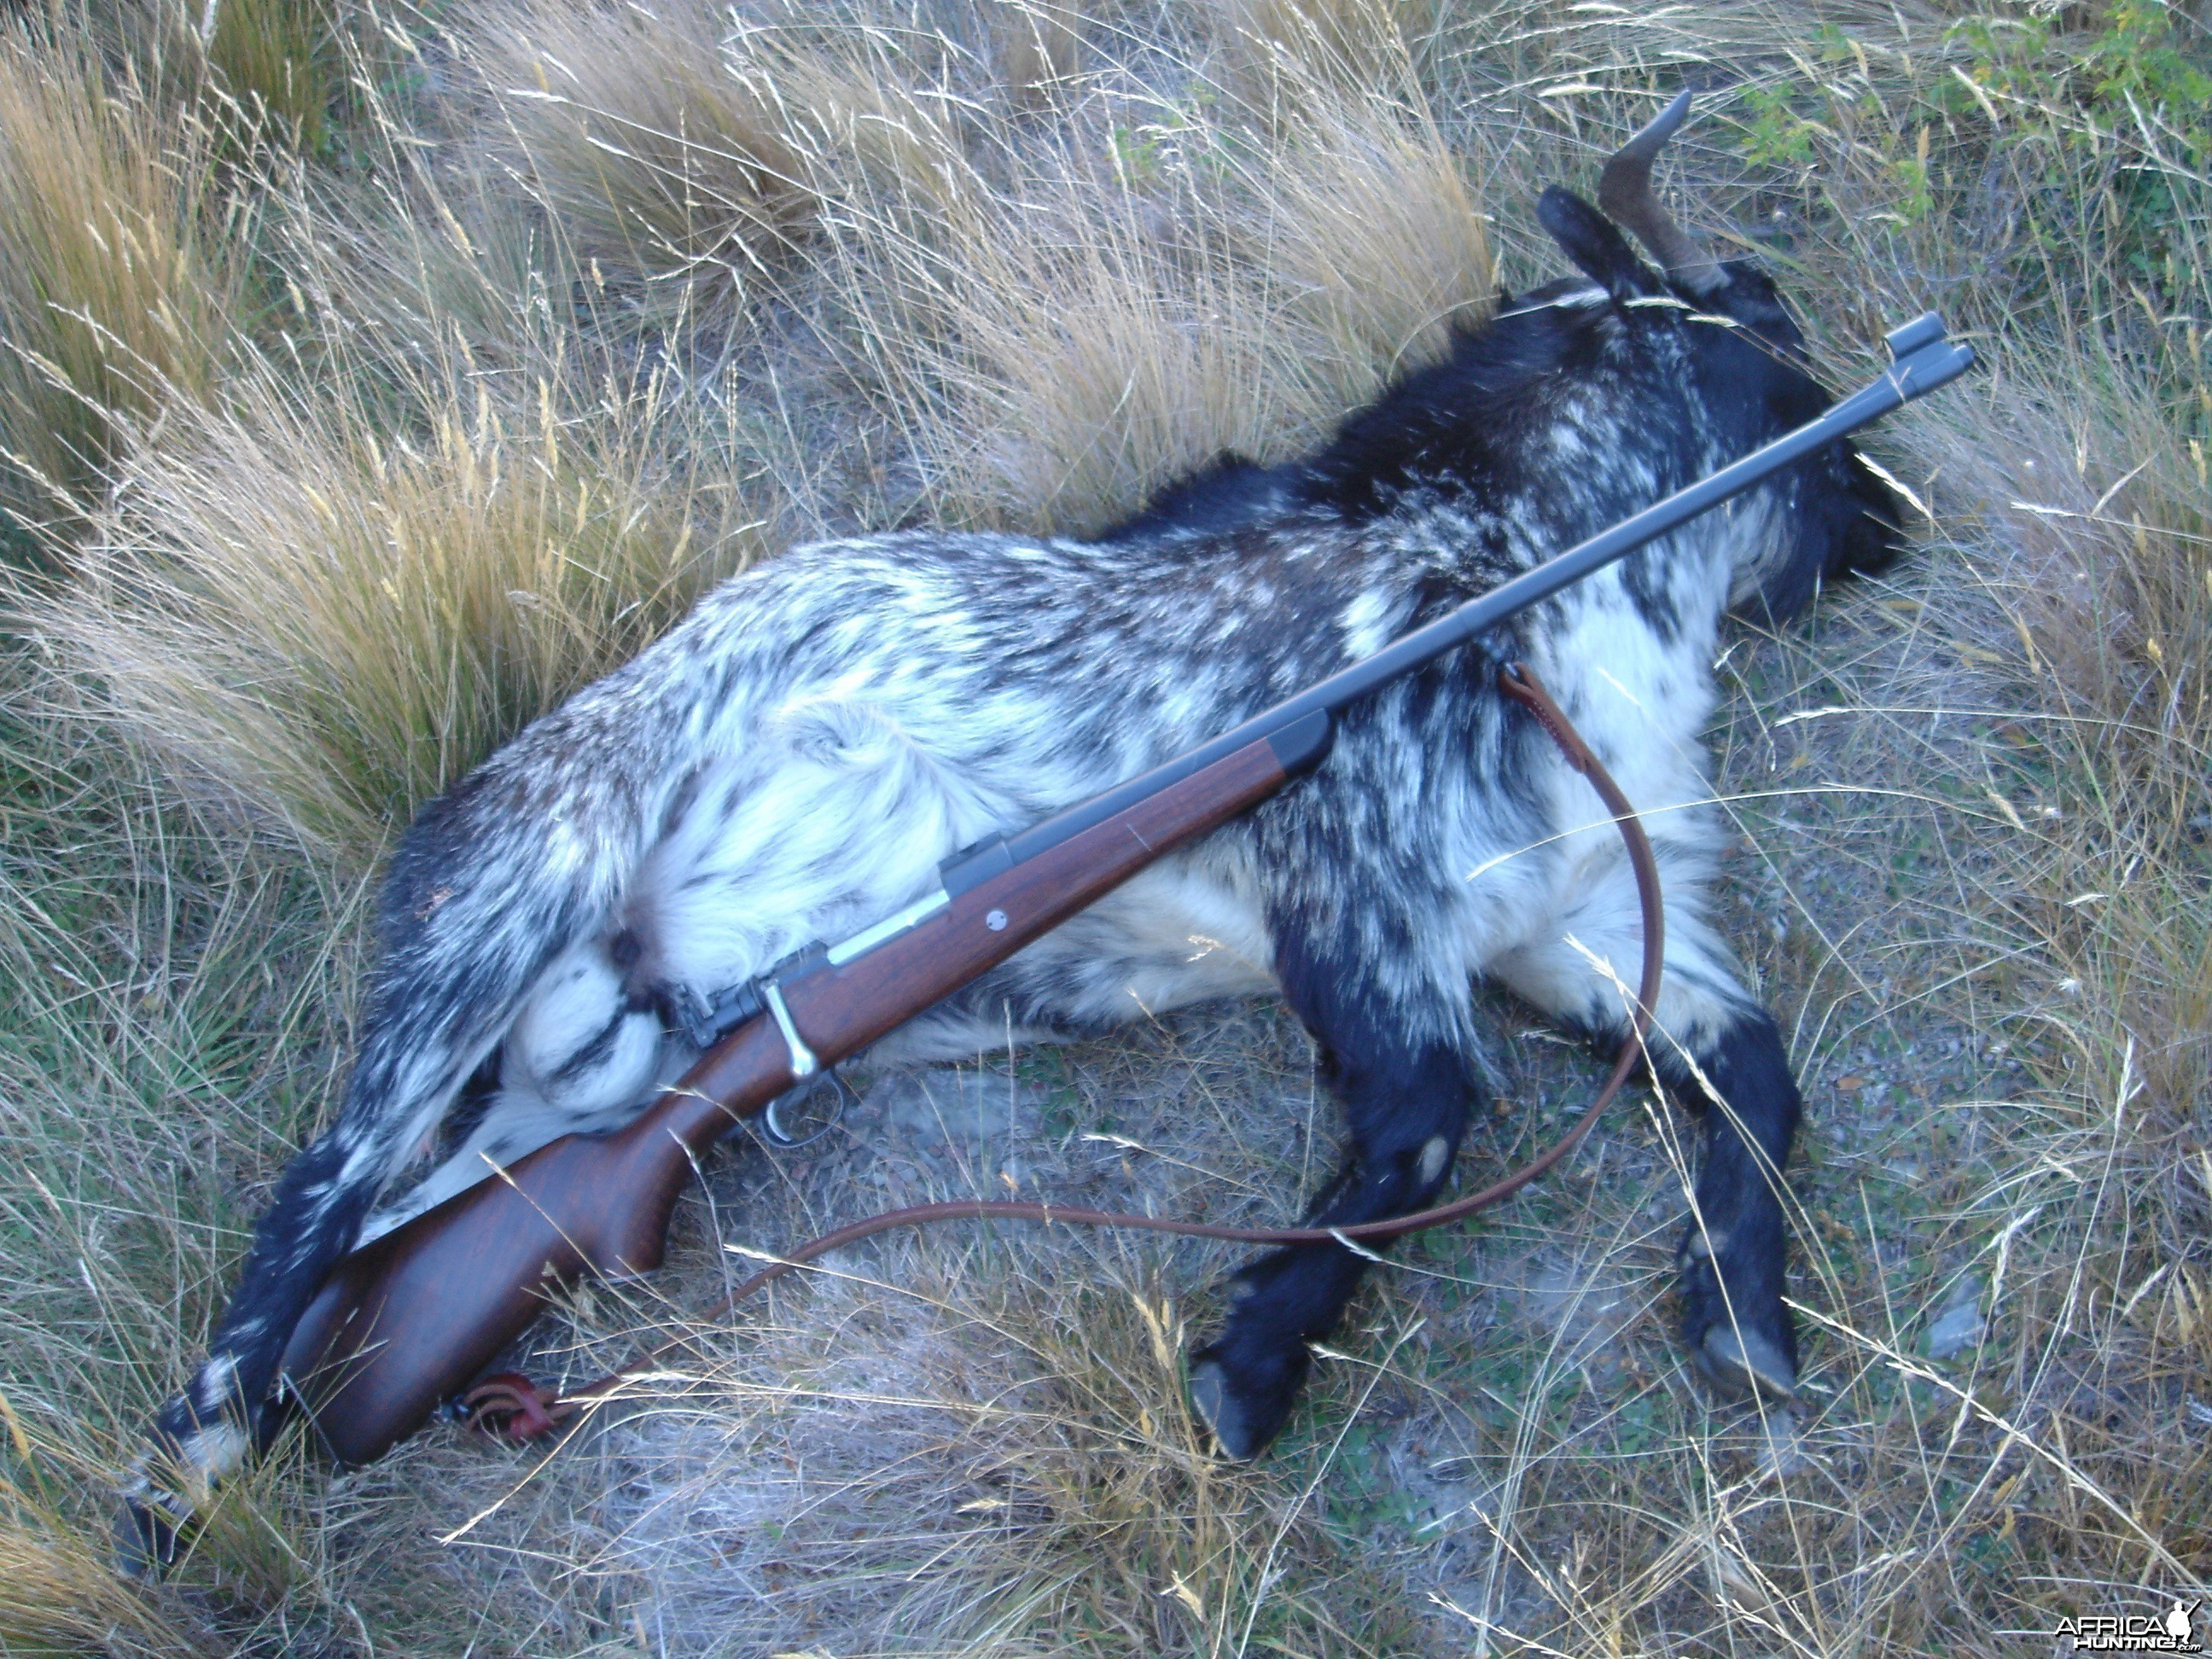 7x57 Stalking Rifle and Goat